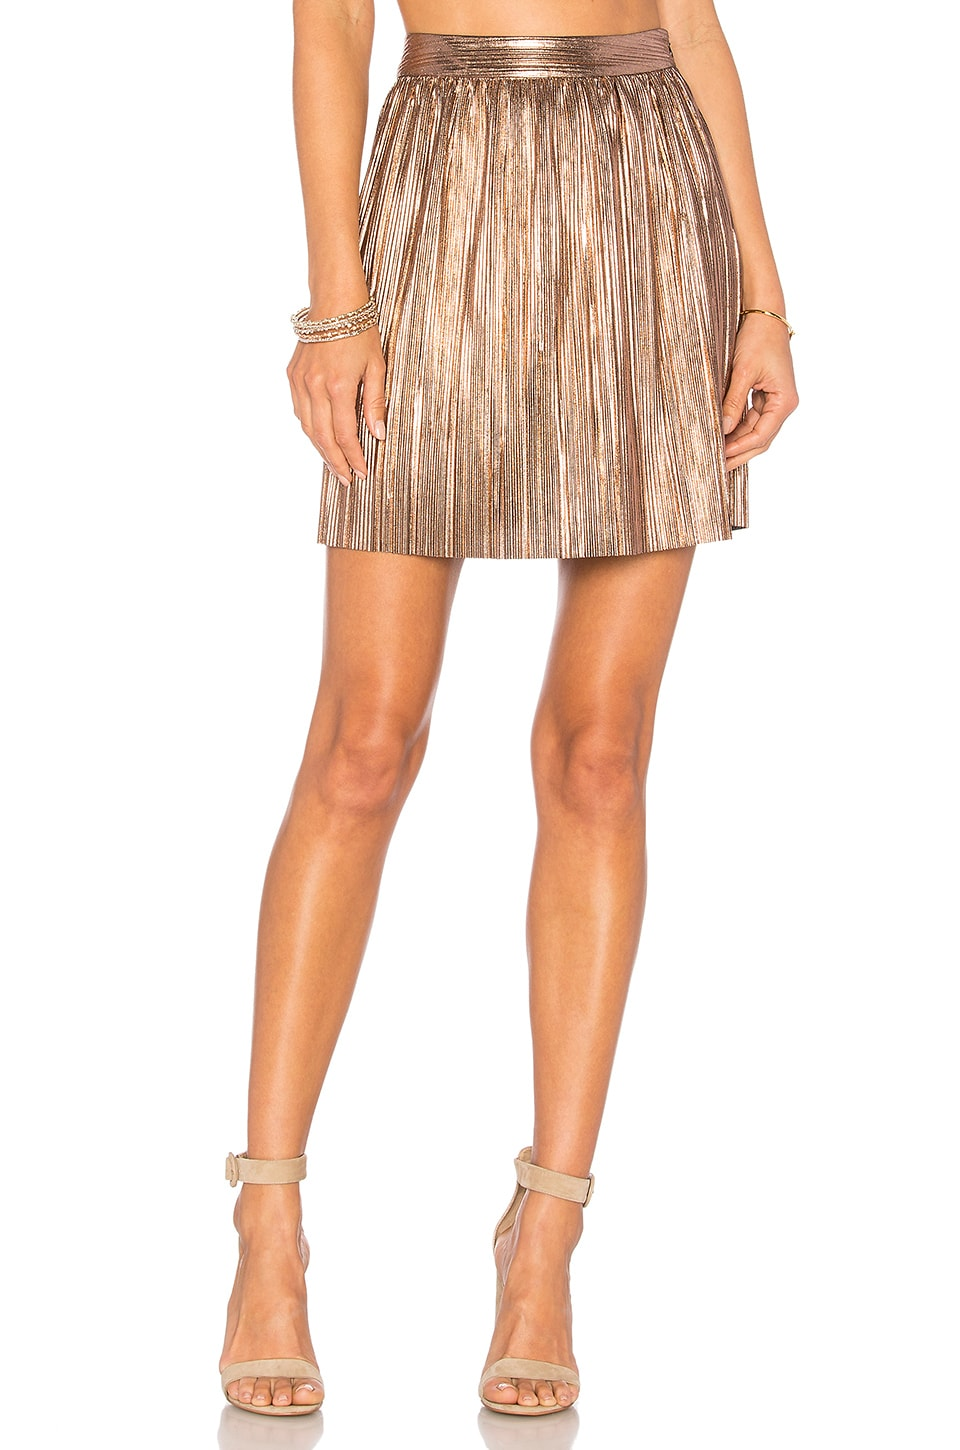 House of Harlow 1960 x REVOLVE Flint Mini Skirt in Rose Gold